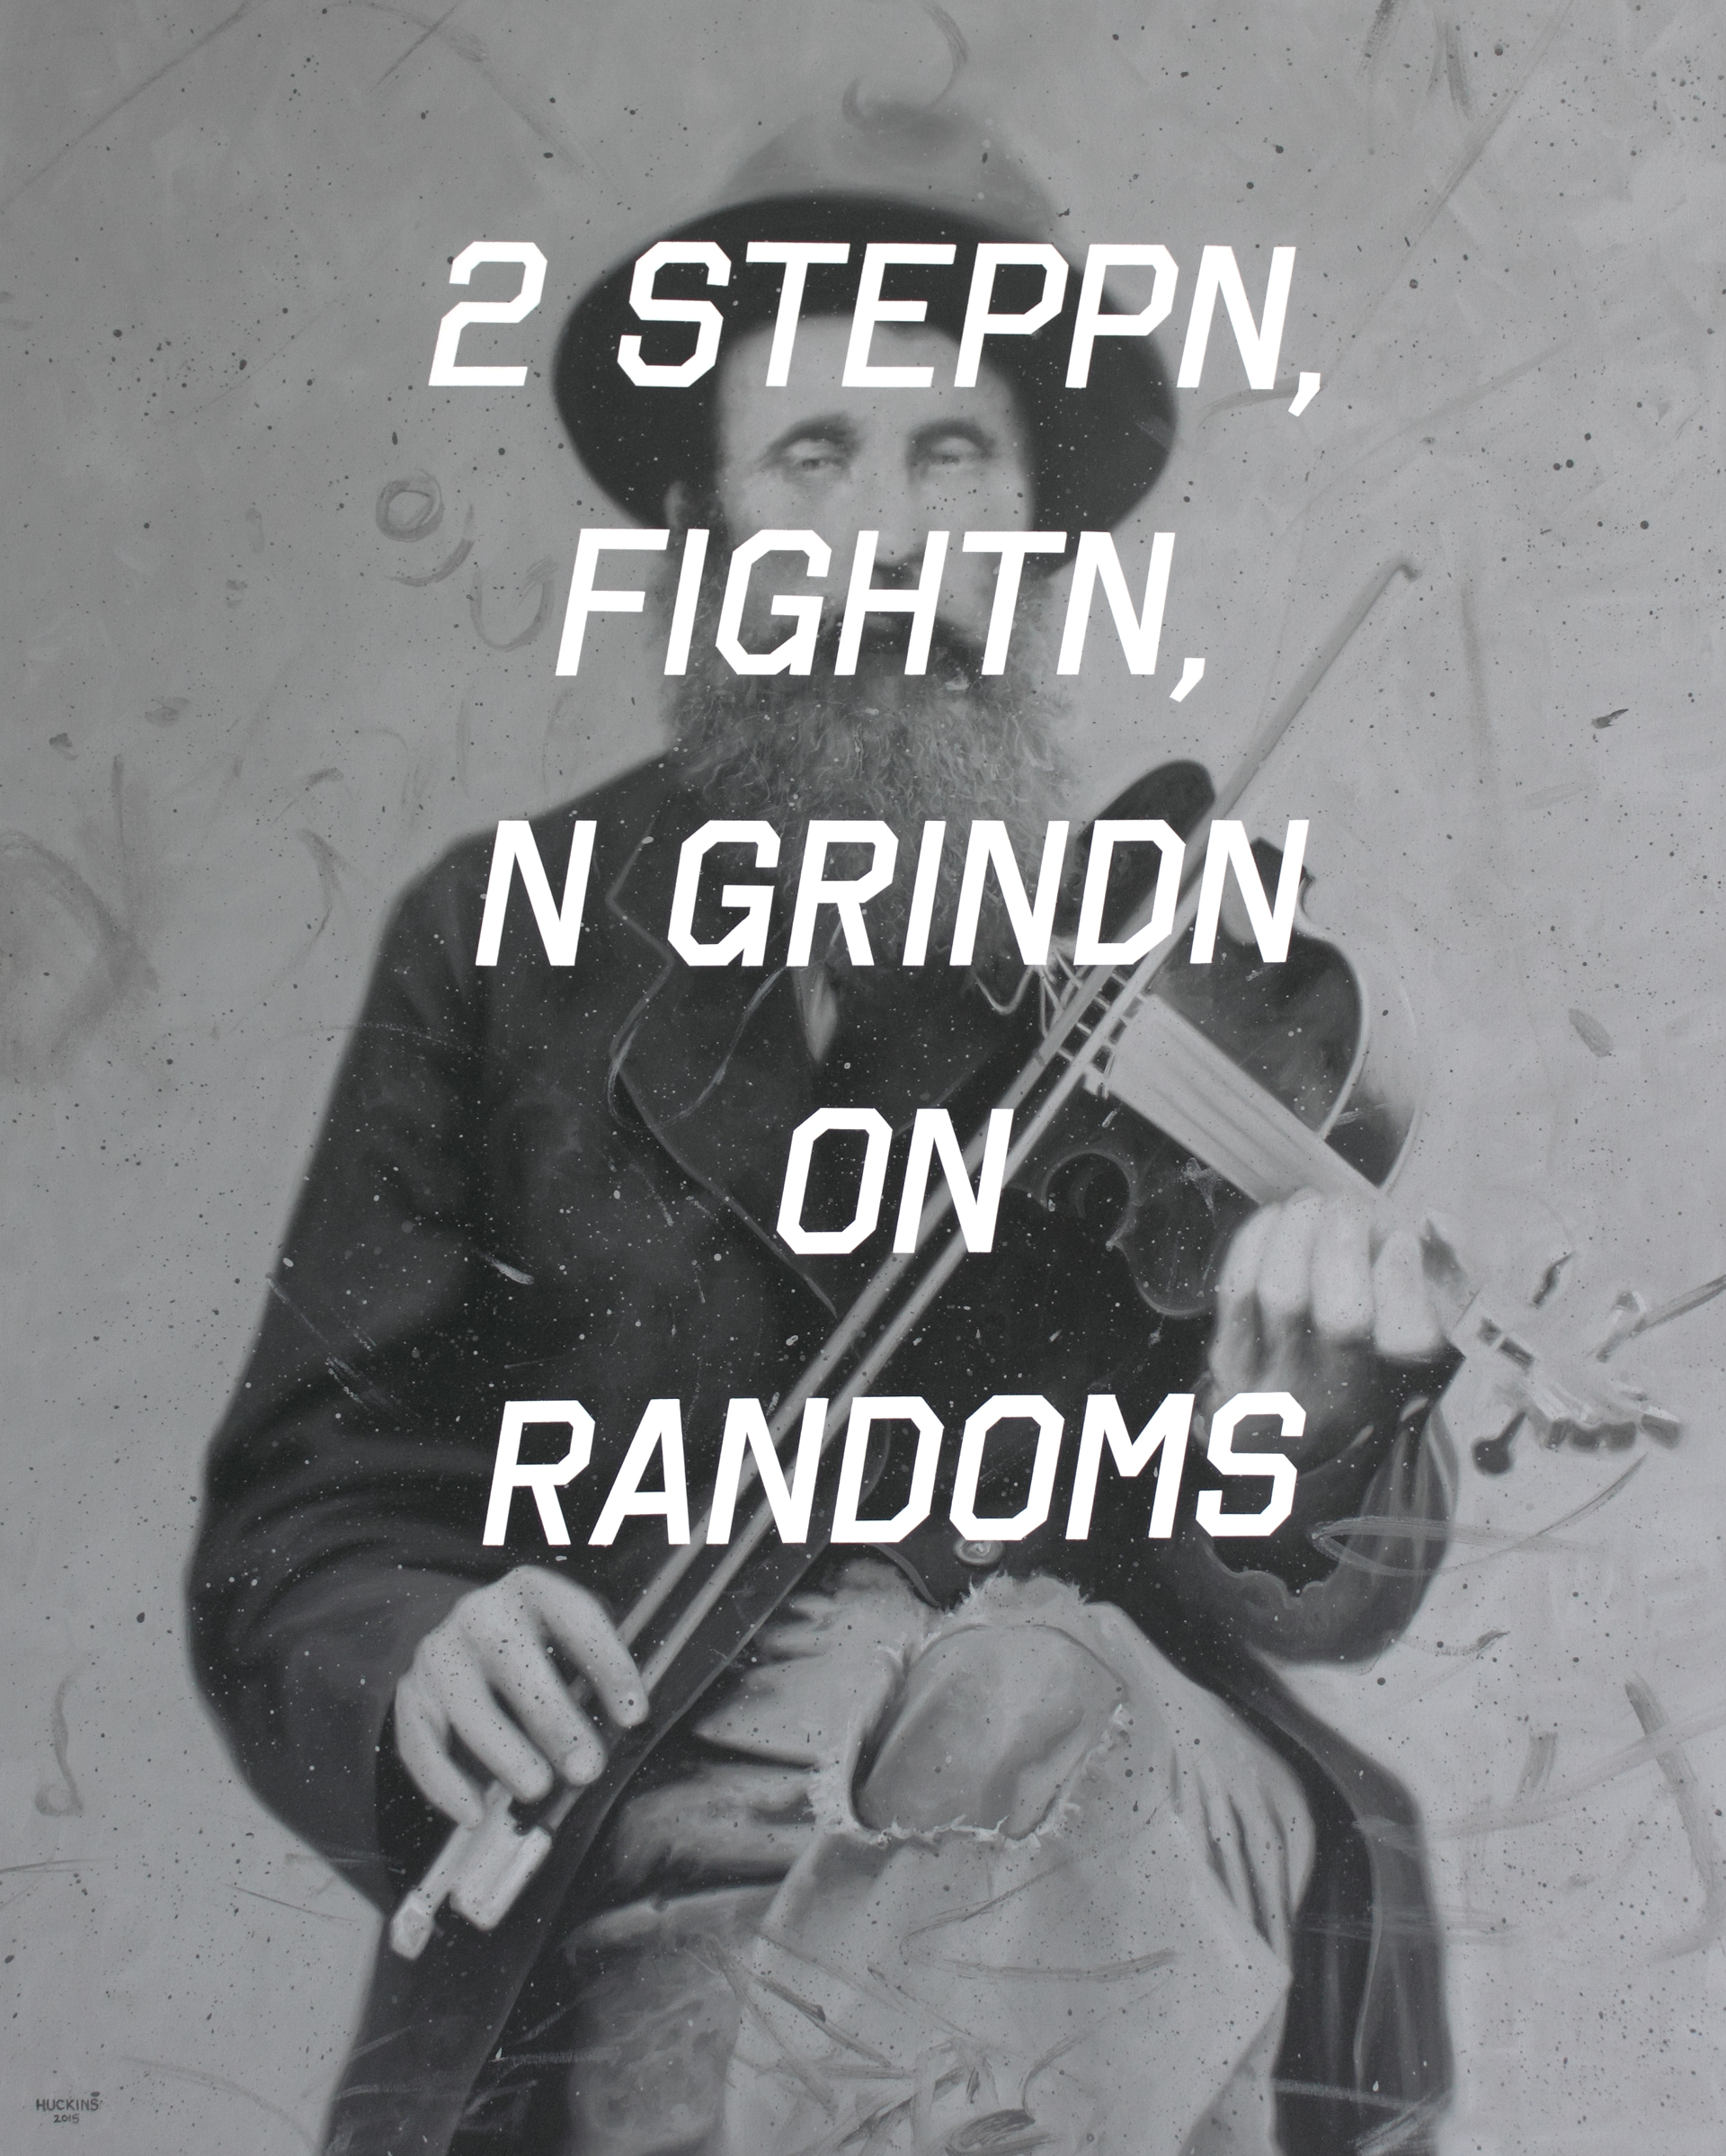 Marshall Cottrell: Two Stepping, Fighting, And Grinding On Randoms by Shawn Huckins